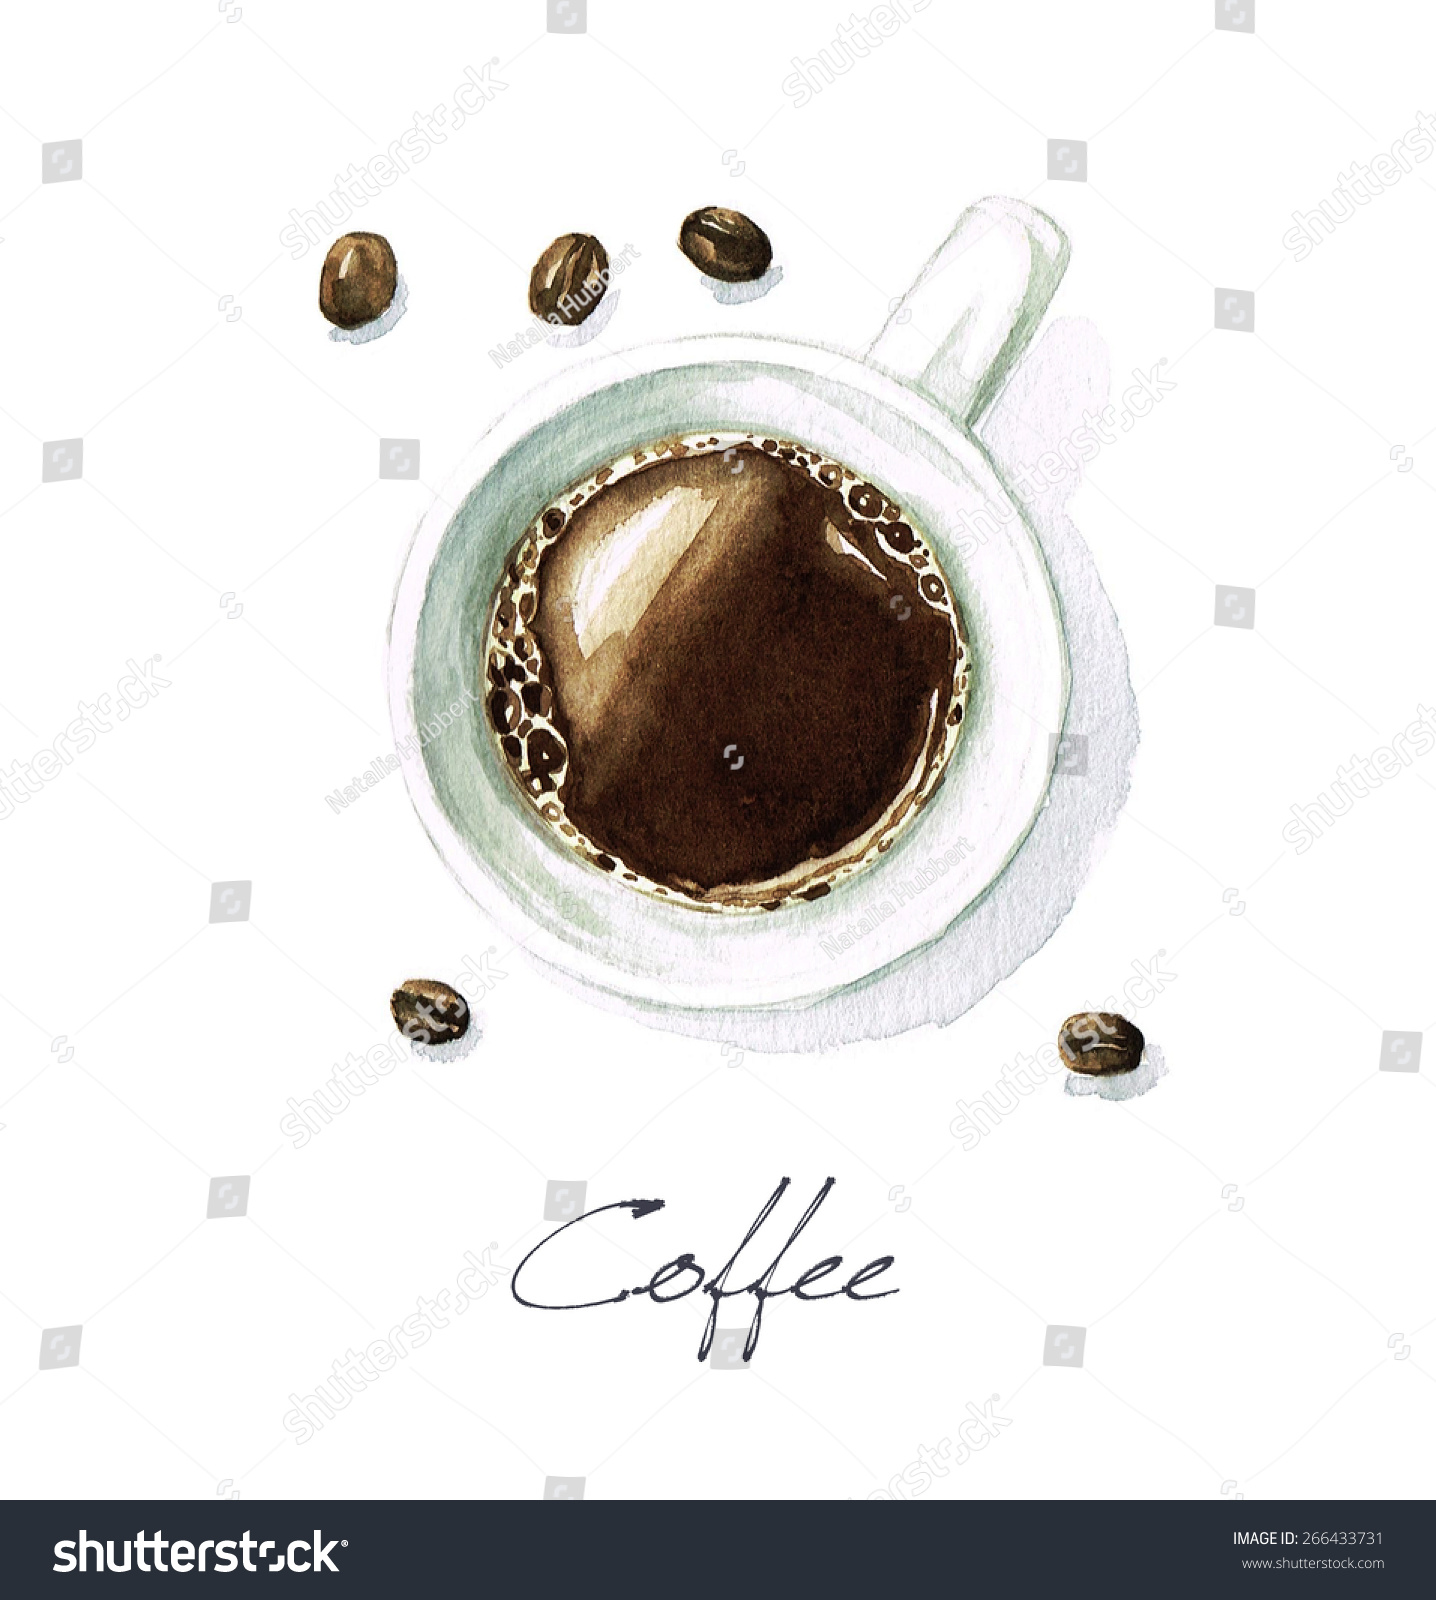 Coffee watercolor food collection stock illustration for Coffee watercolor